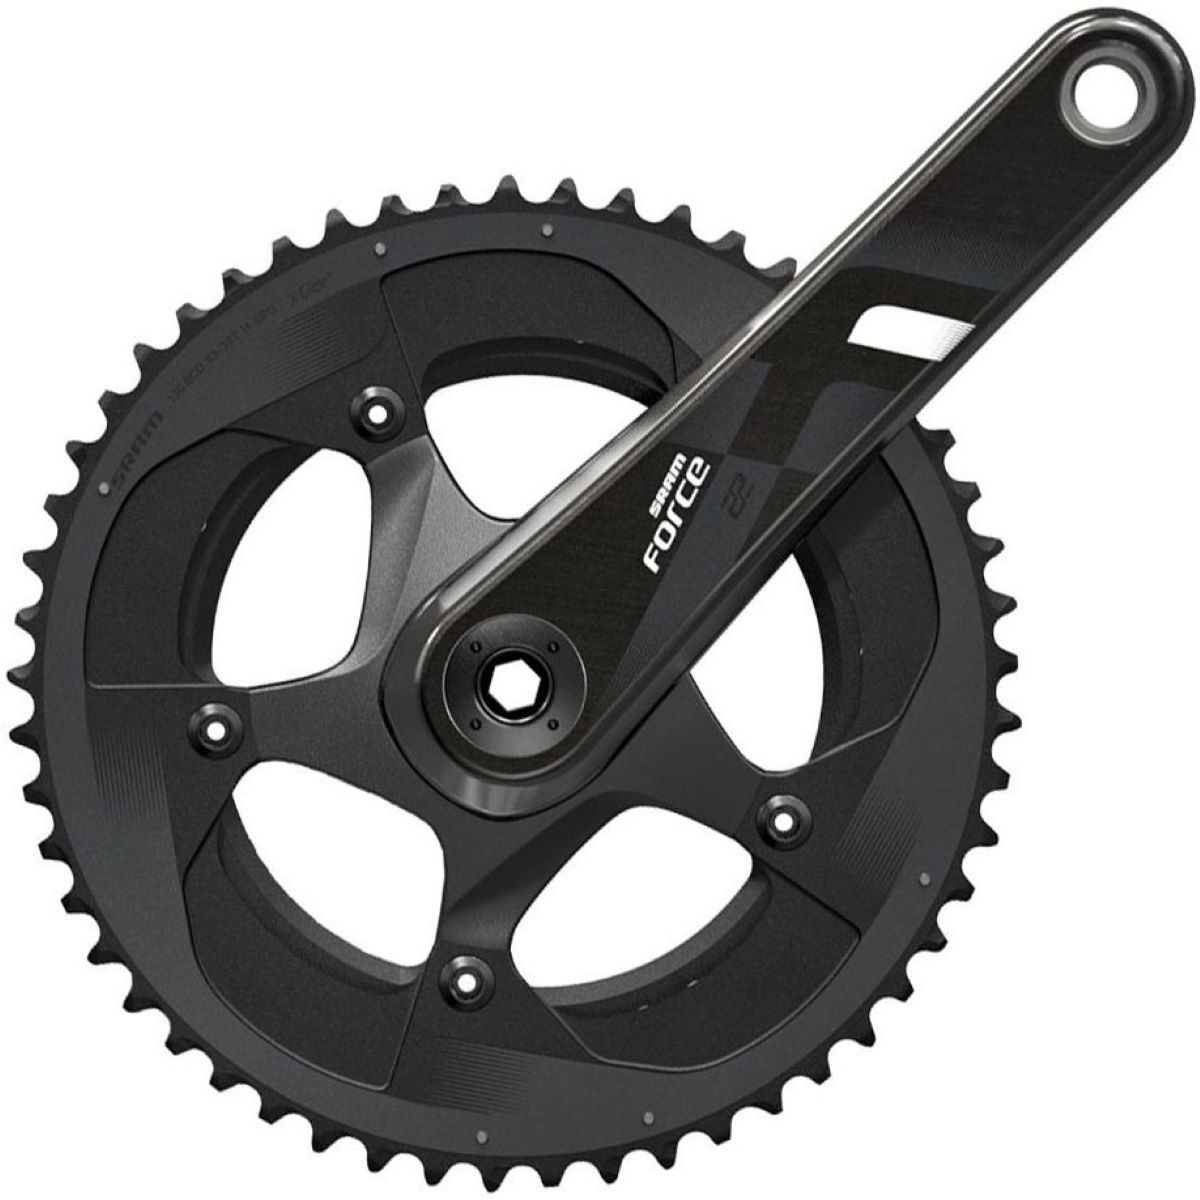 Sram Force 22 Gxp Double Chainset - 53/39t 175mm Black/grey